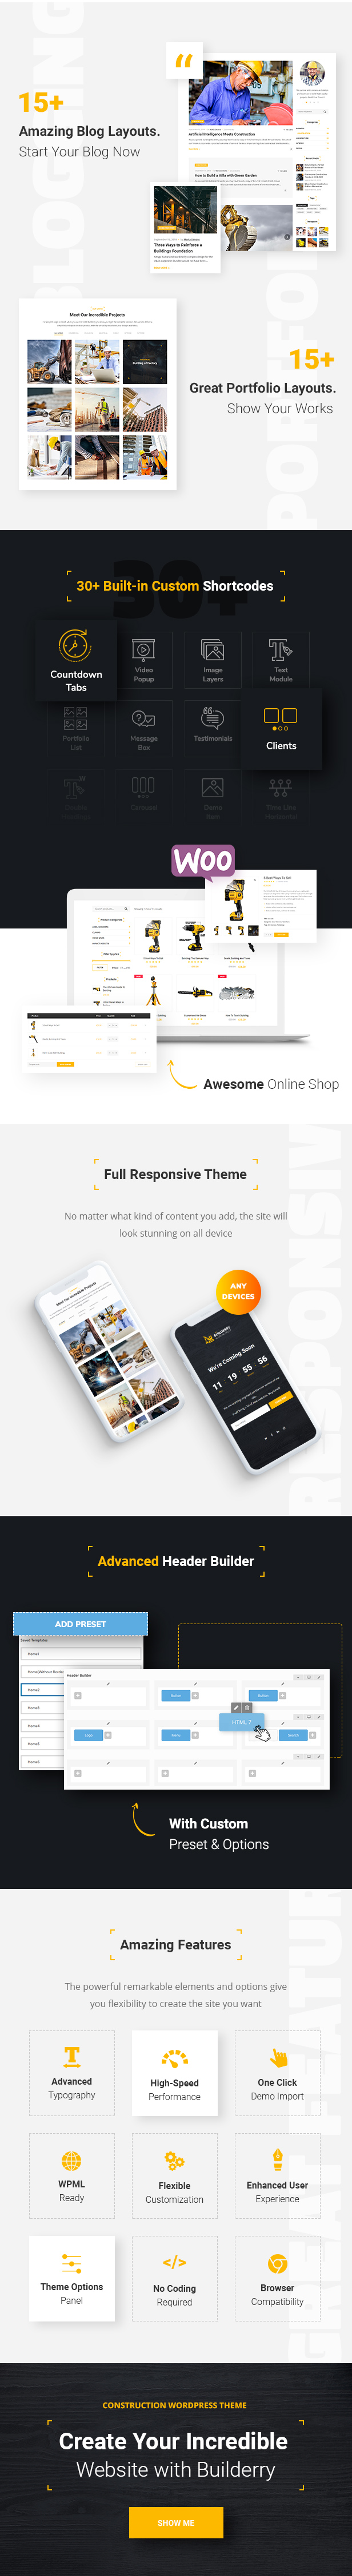 Builderry - Construction and Building WordPress Theme - 3